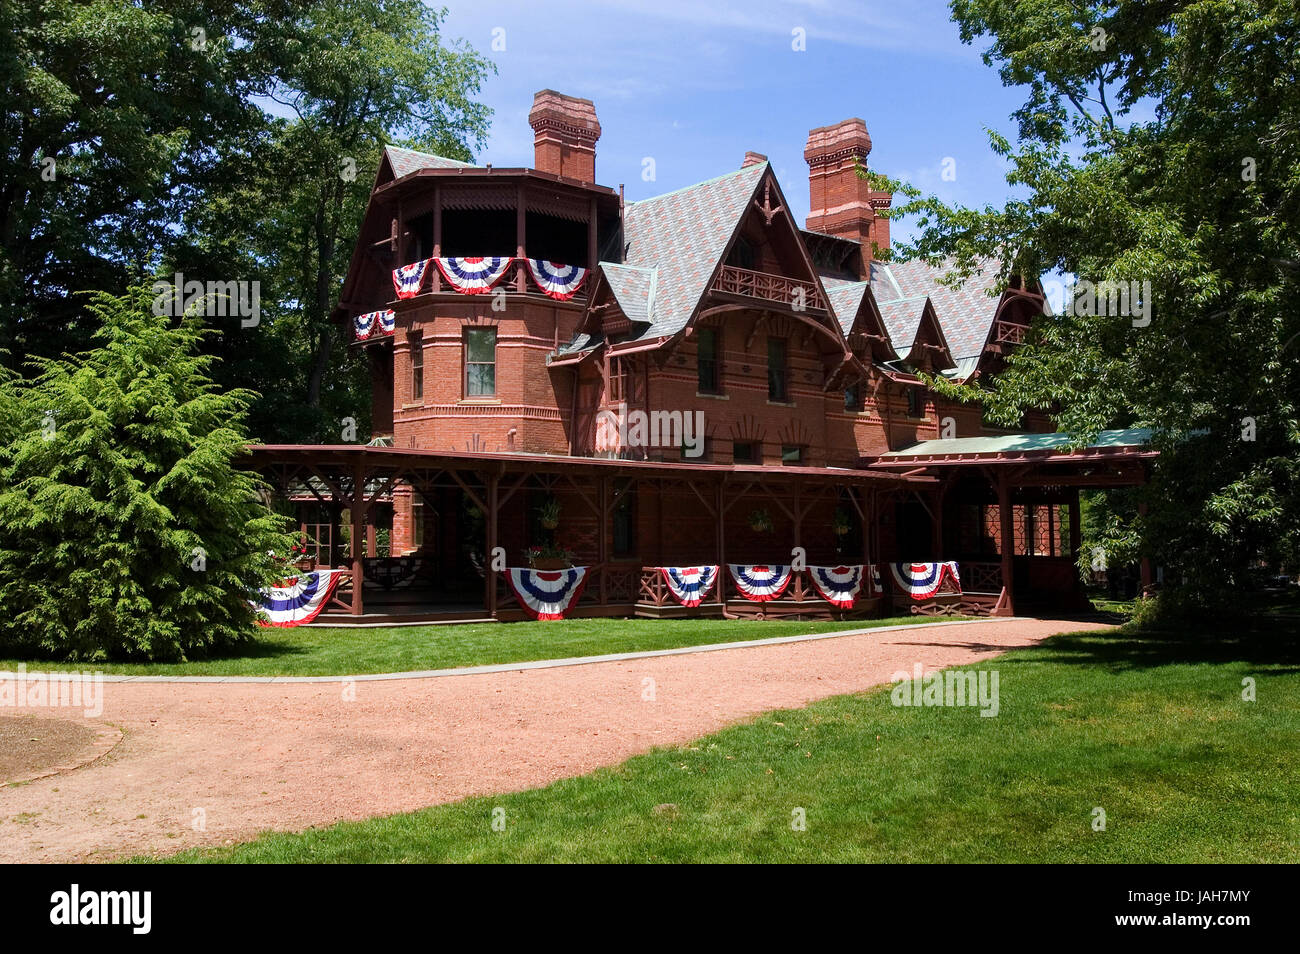 The Mark Twain house in Hartford, Connecticut, USA Stock Photo